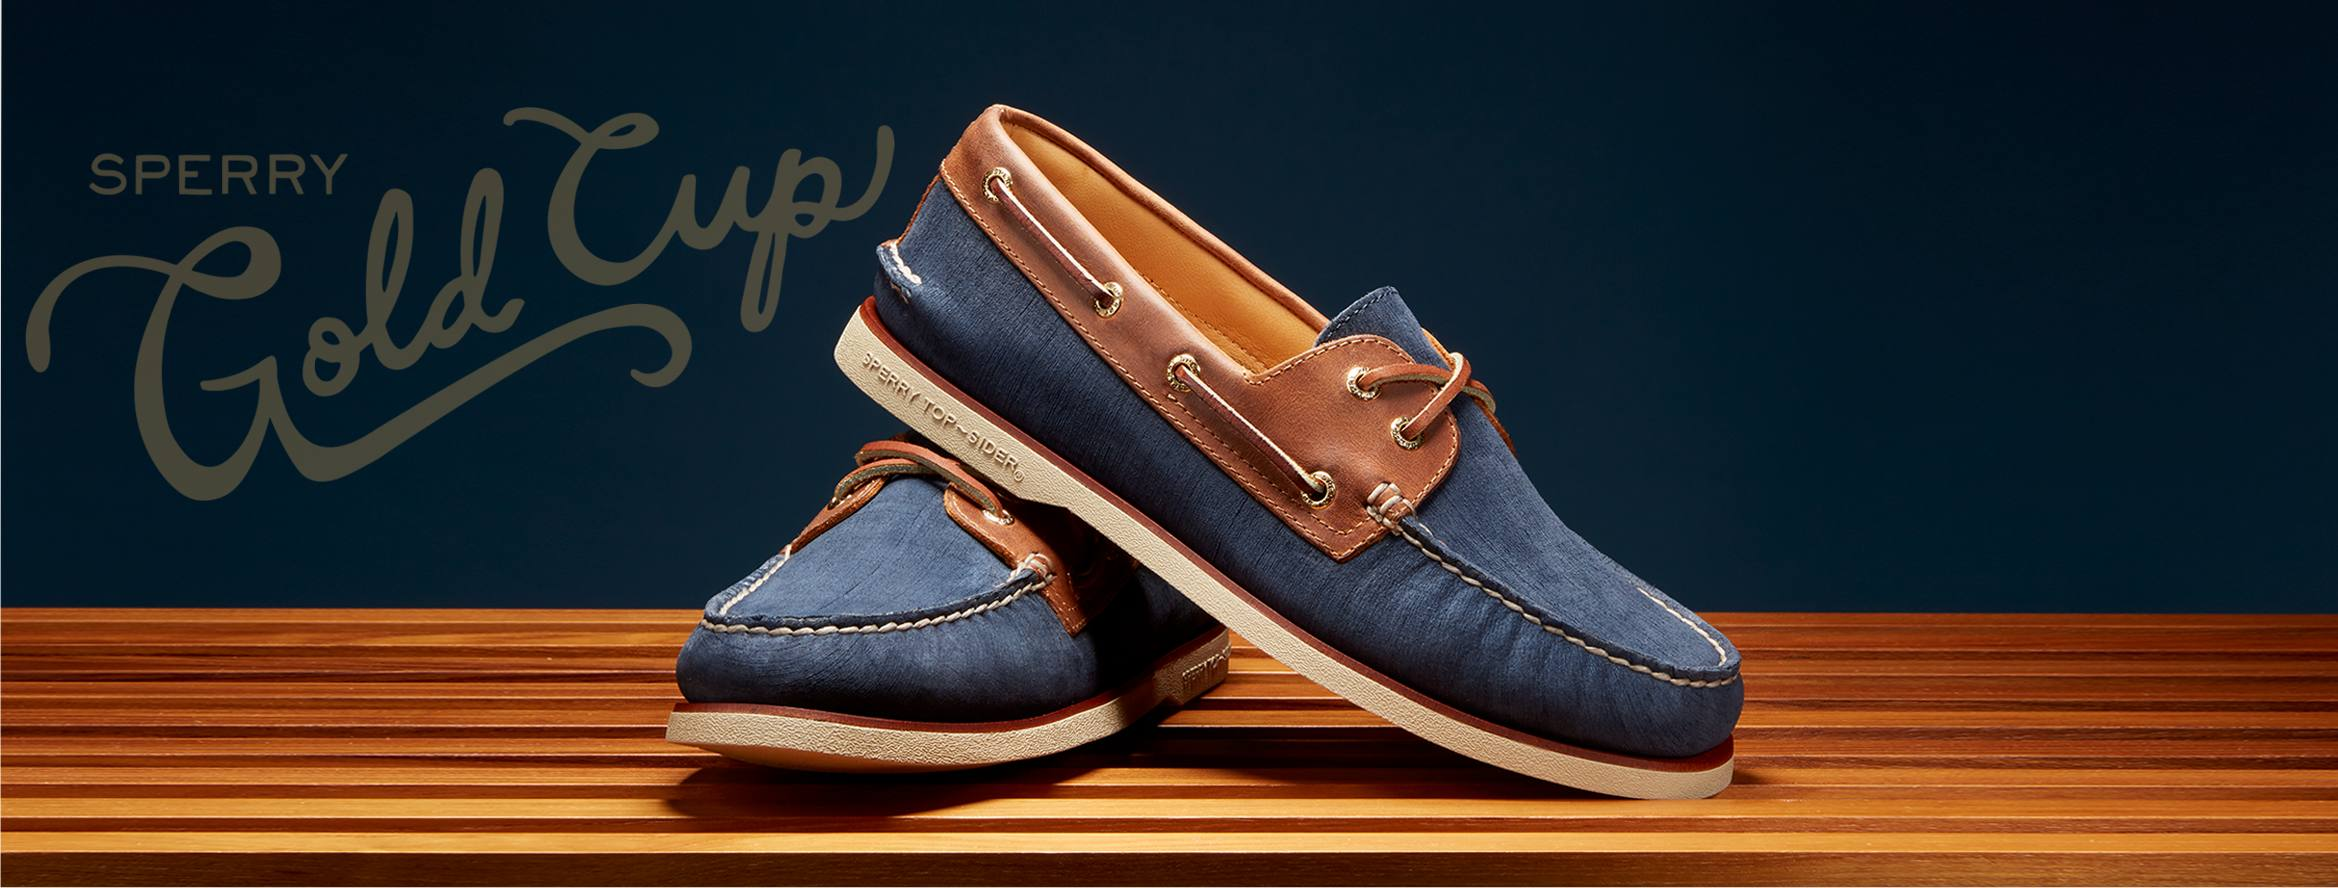 Sperry Cold Cup